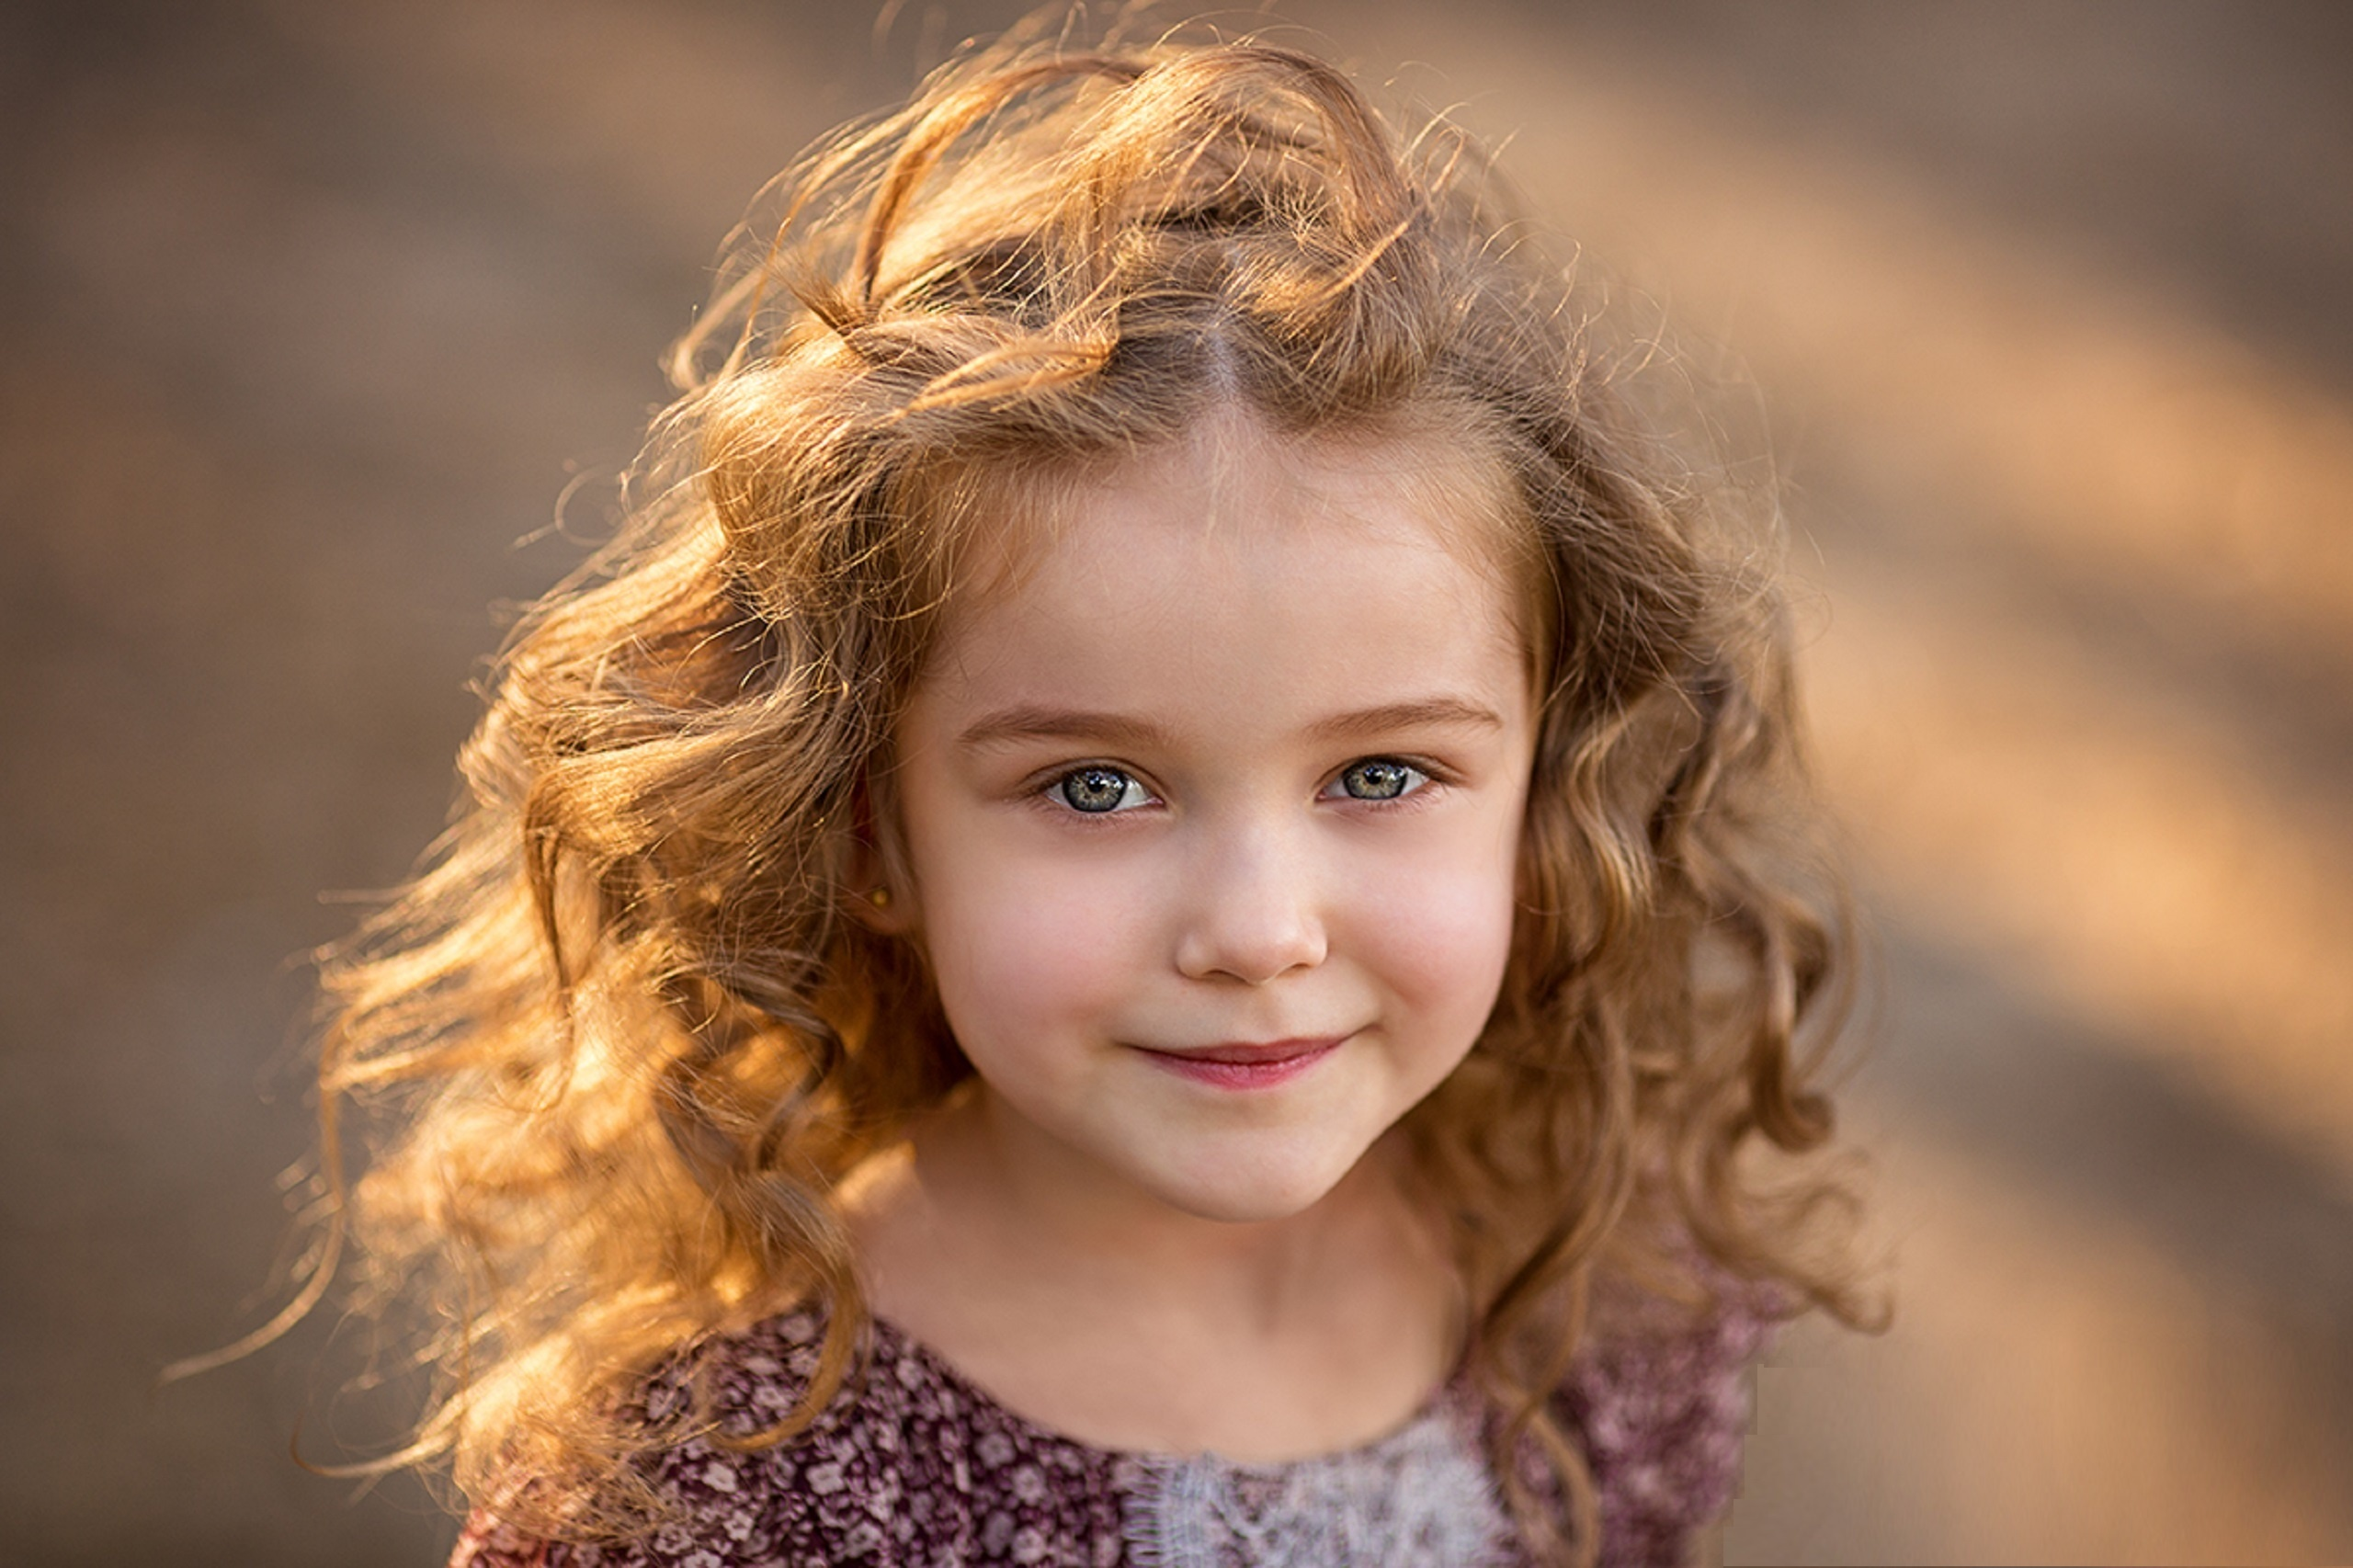 Image: Girl, curly, hair, eyes, smile, Catherine Stern, photographer